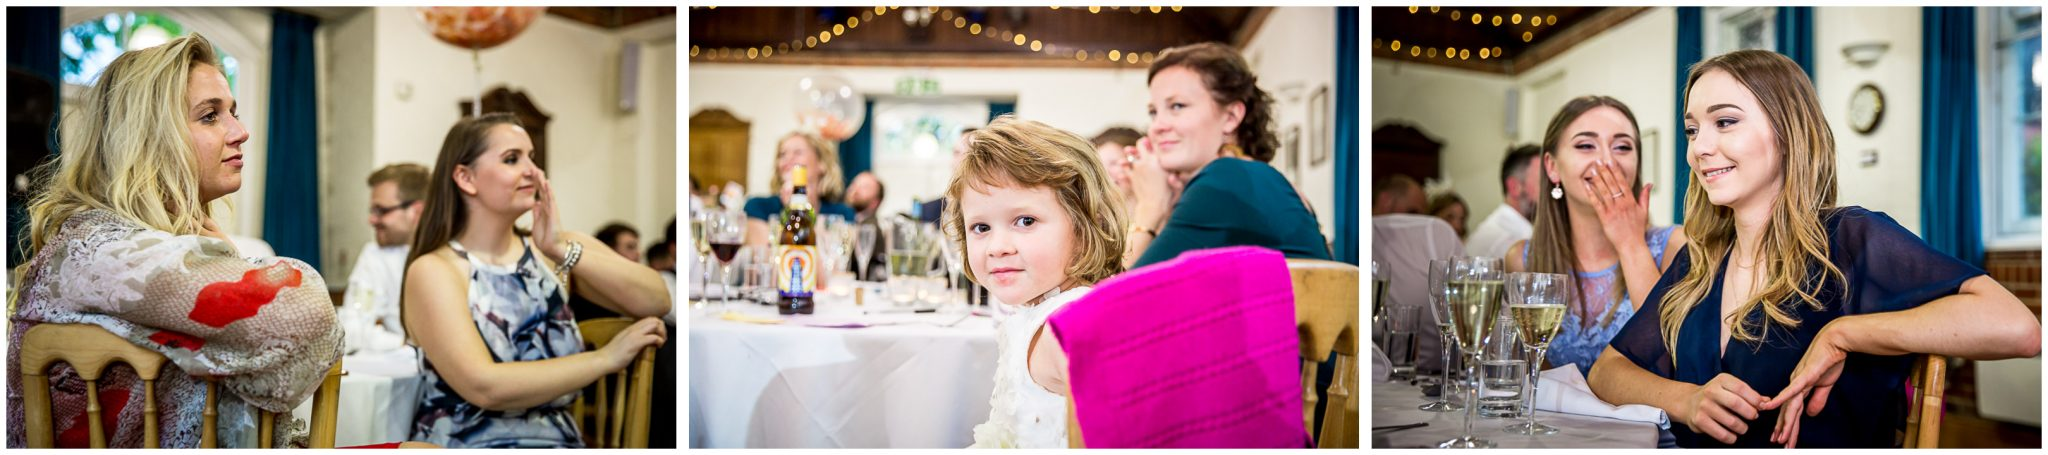 Wedding guests watching the speeches at village hall reception